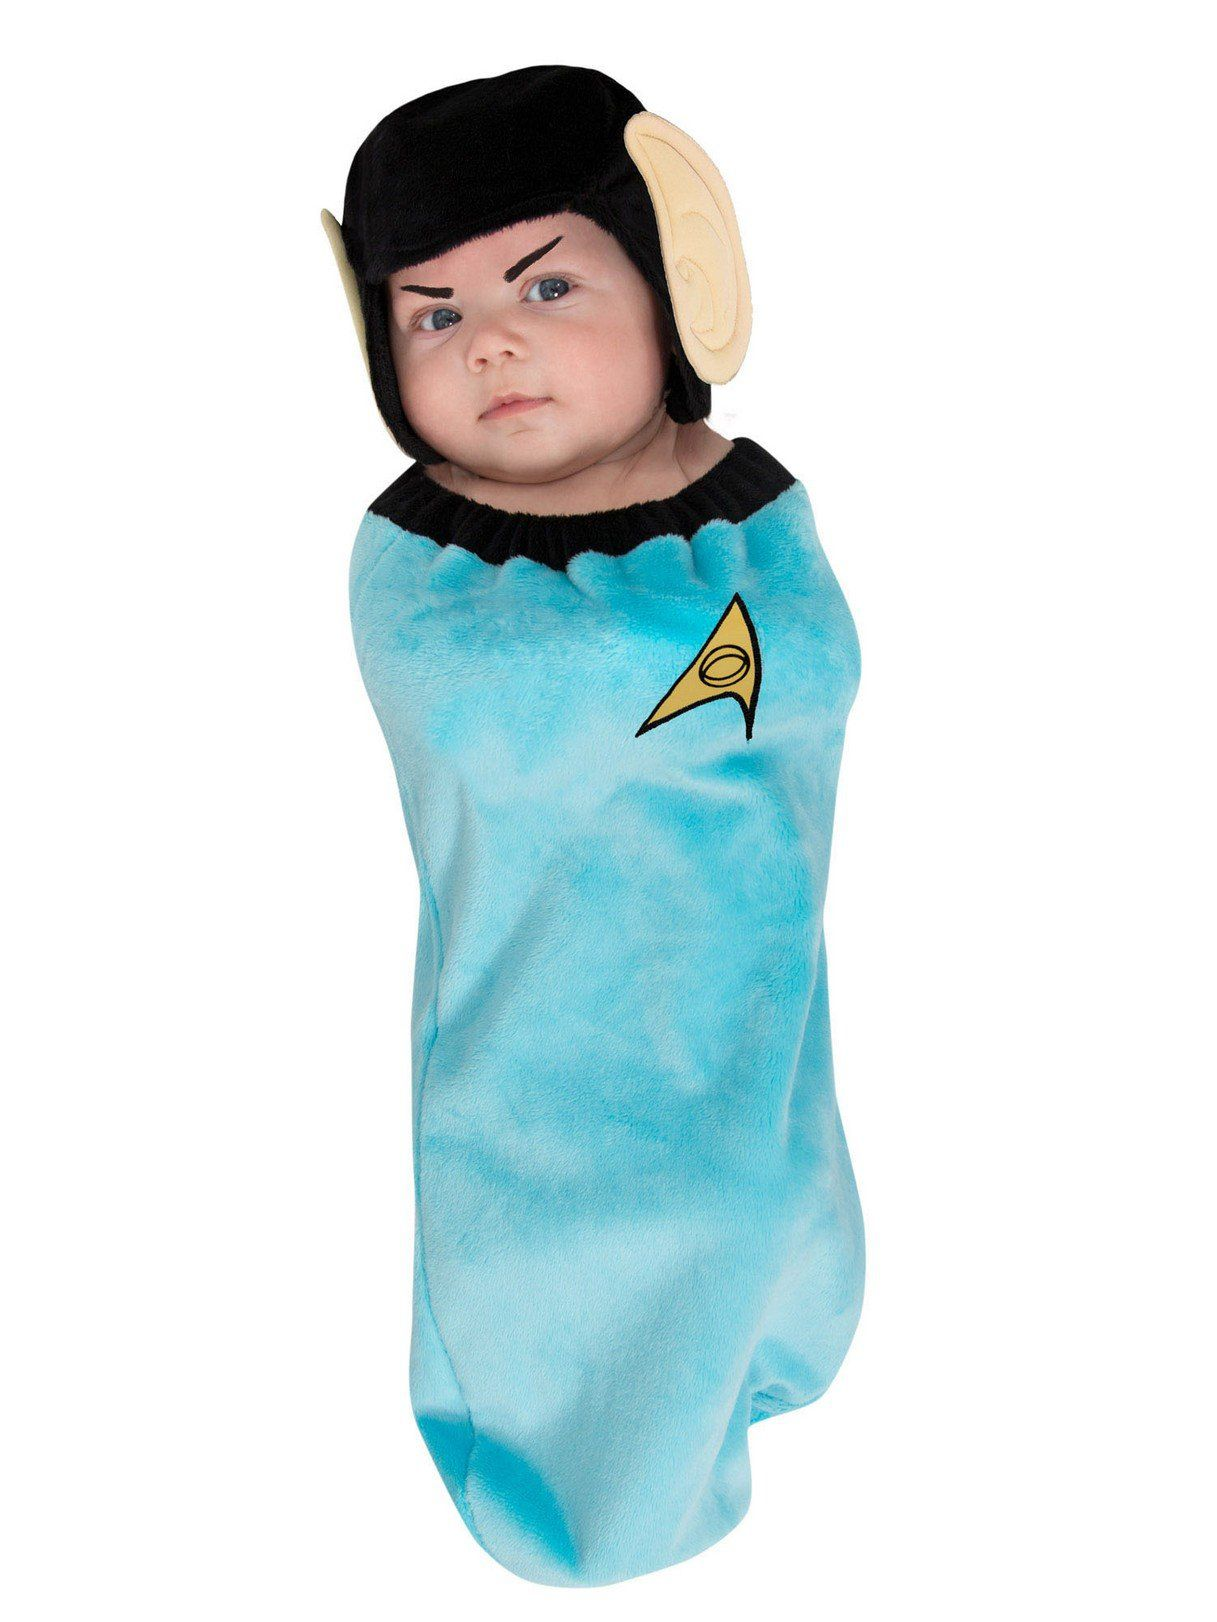 Newborn Star Trek Spock Costume  sc 1 st  Wholesale Halloween Costumes & Newborn Star Trek Spock Costume - Baby/Toddler Costumes for 2018 ...